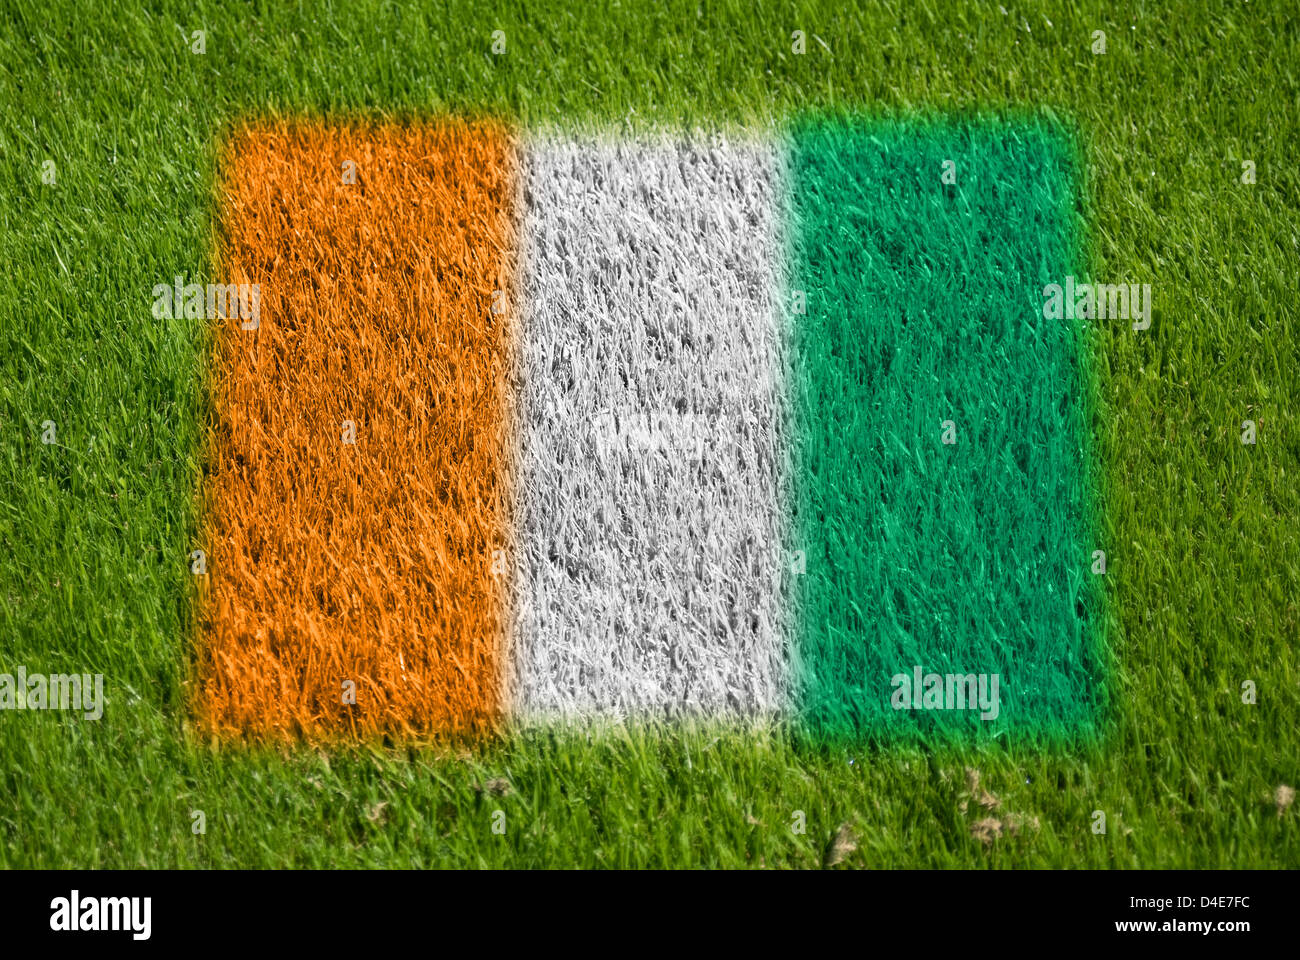 flag of cote d'ivoire on grass with spray - Stock Image